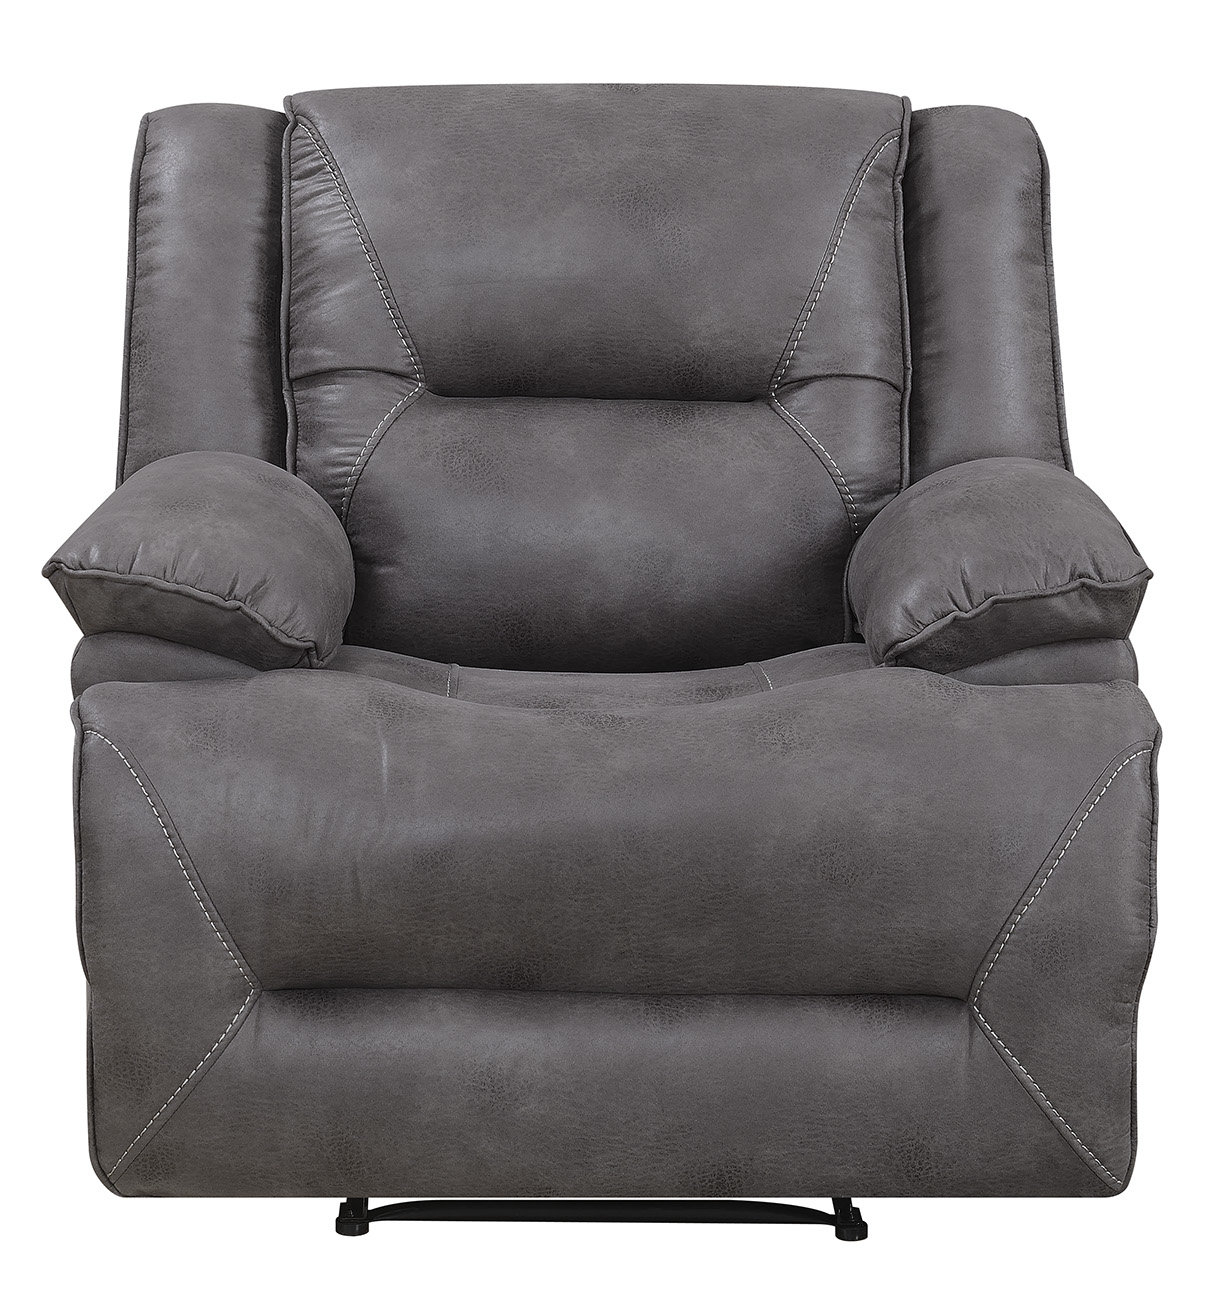 Darby Home Co Finlay Recliner | Wayfair Throughout Dale Iii Polyurethane Swivel Glider Recliners (View 8 of 25)